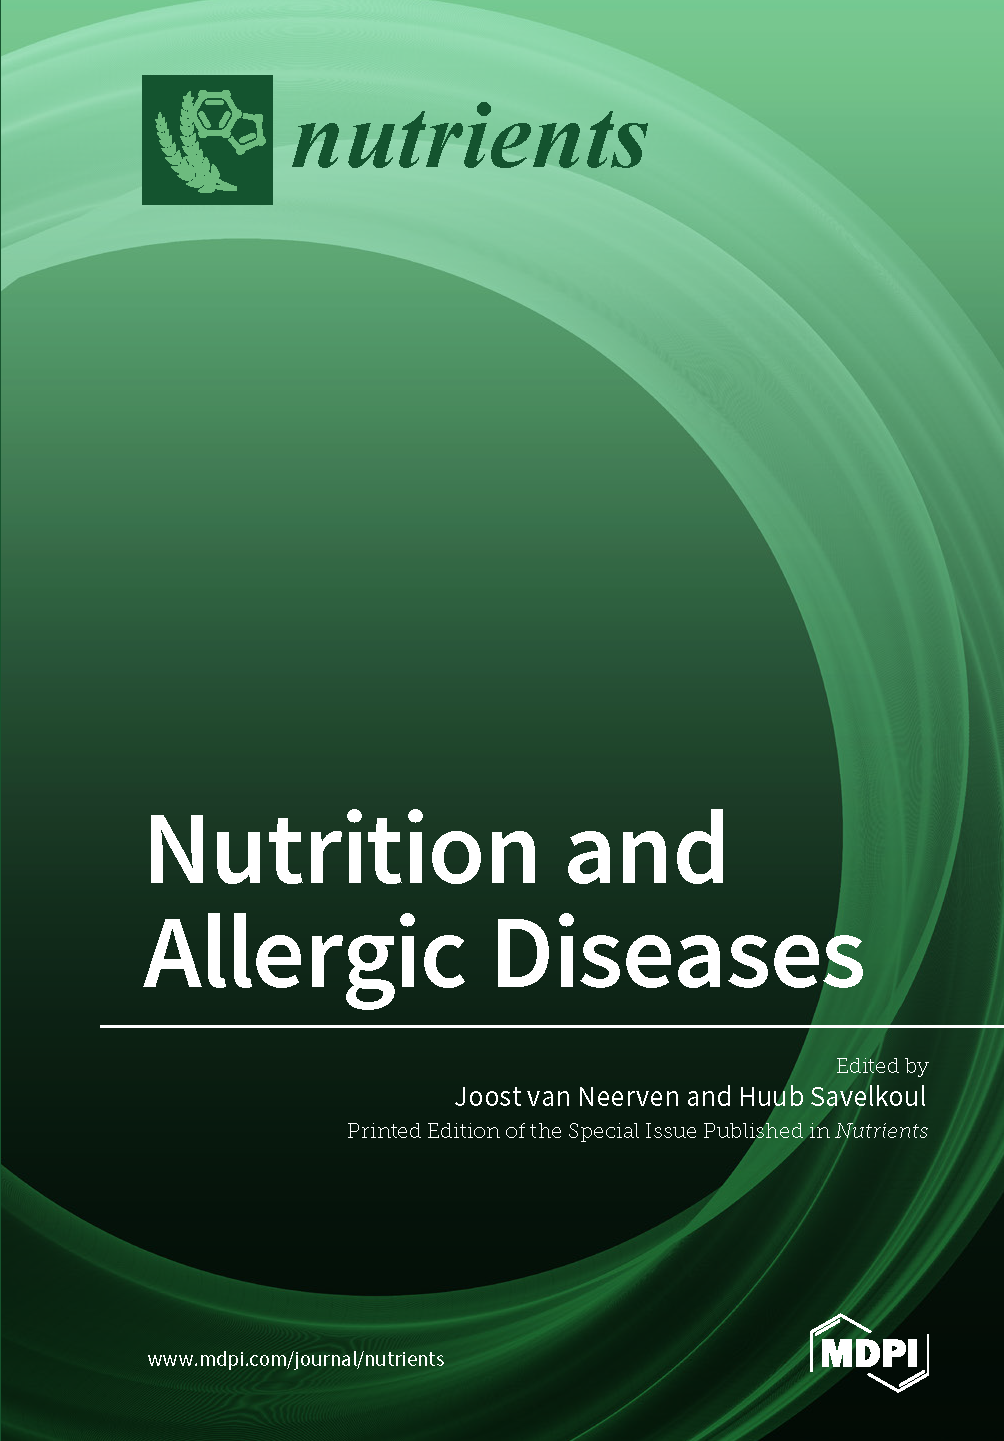 Nutrition and Allergic Diseases